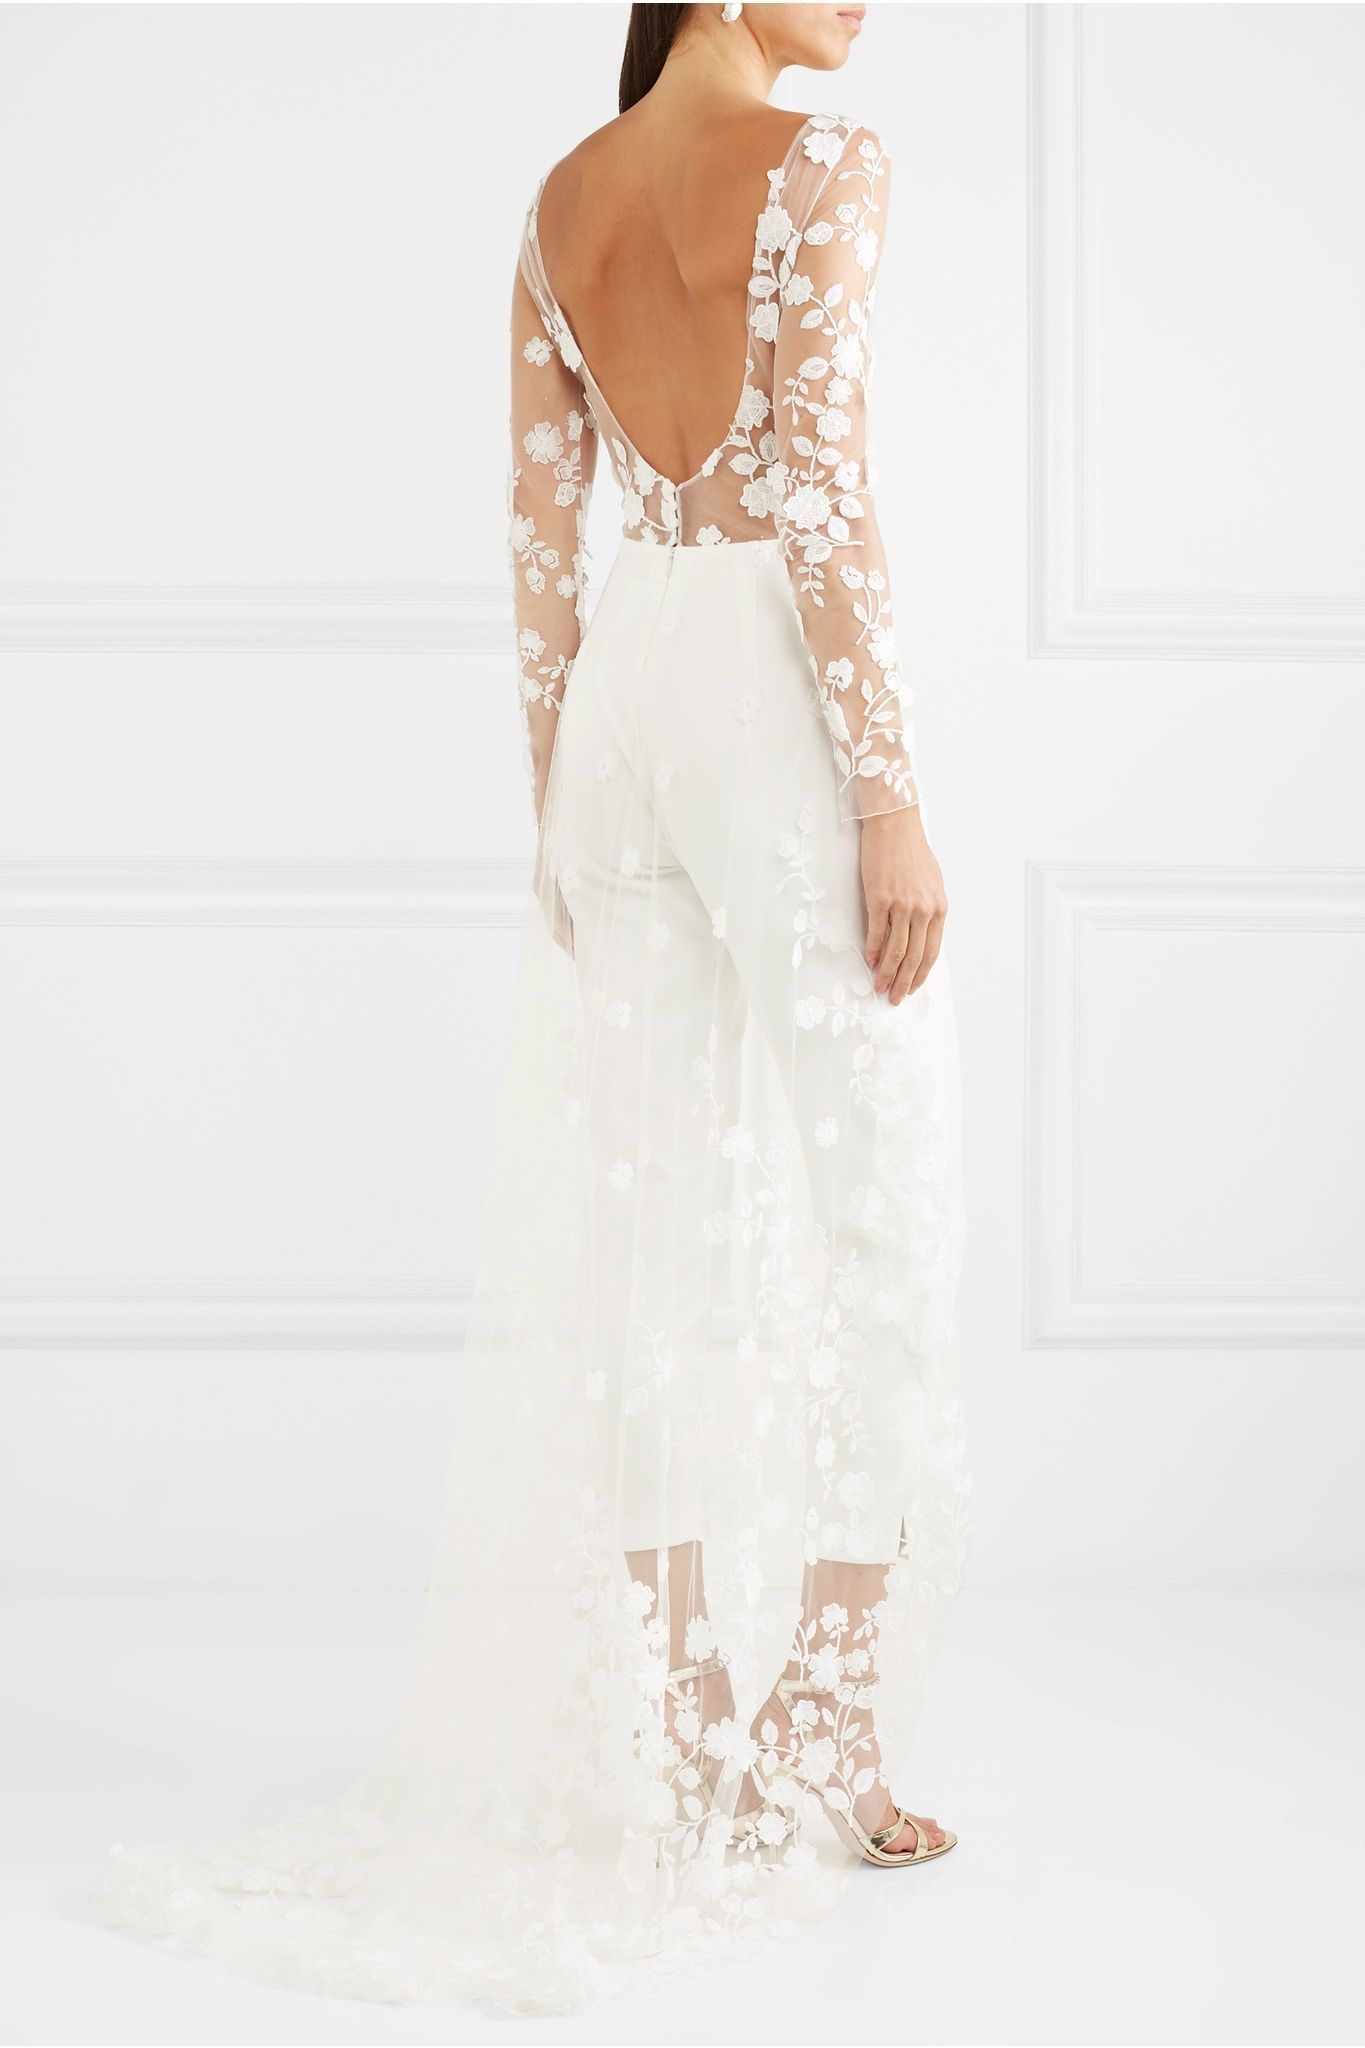 41+ Wedding jumpsuit with tulle train ideas in 2021